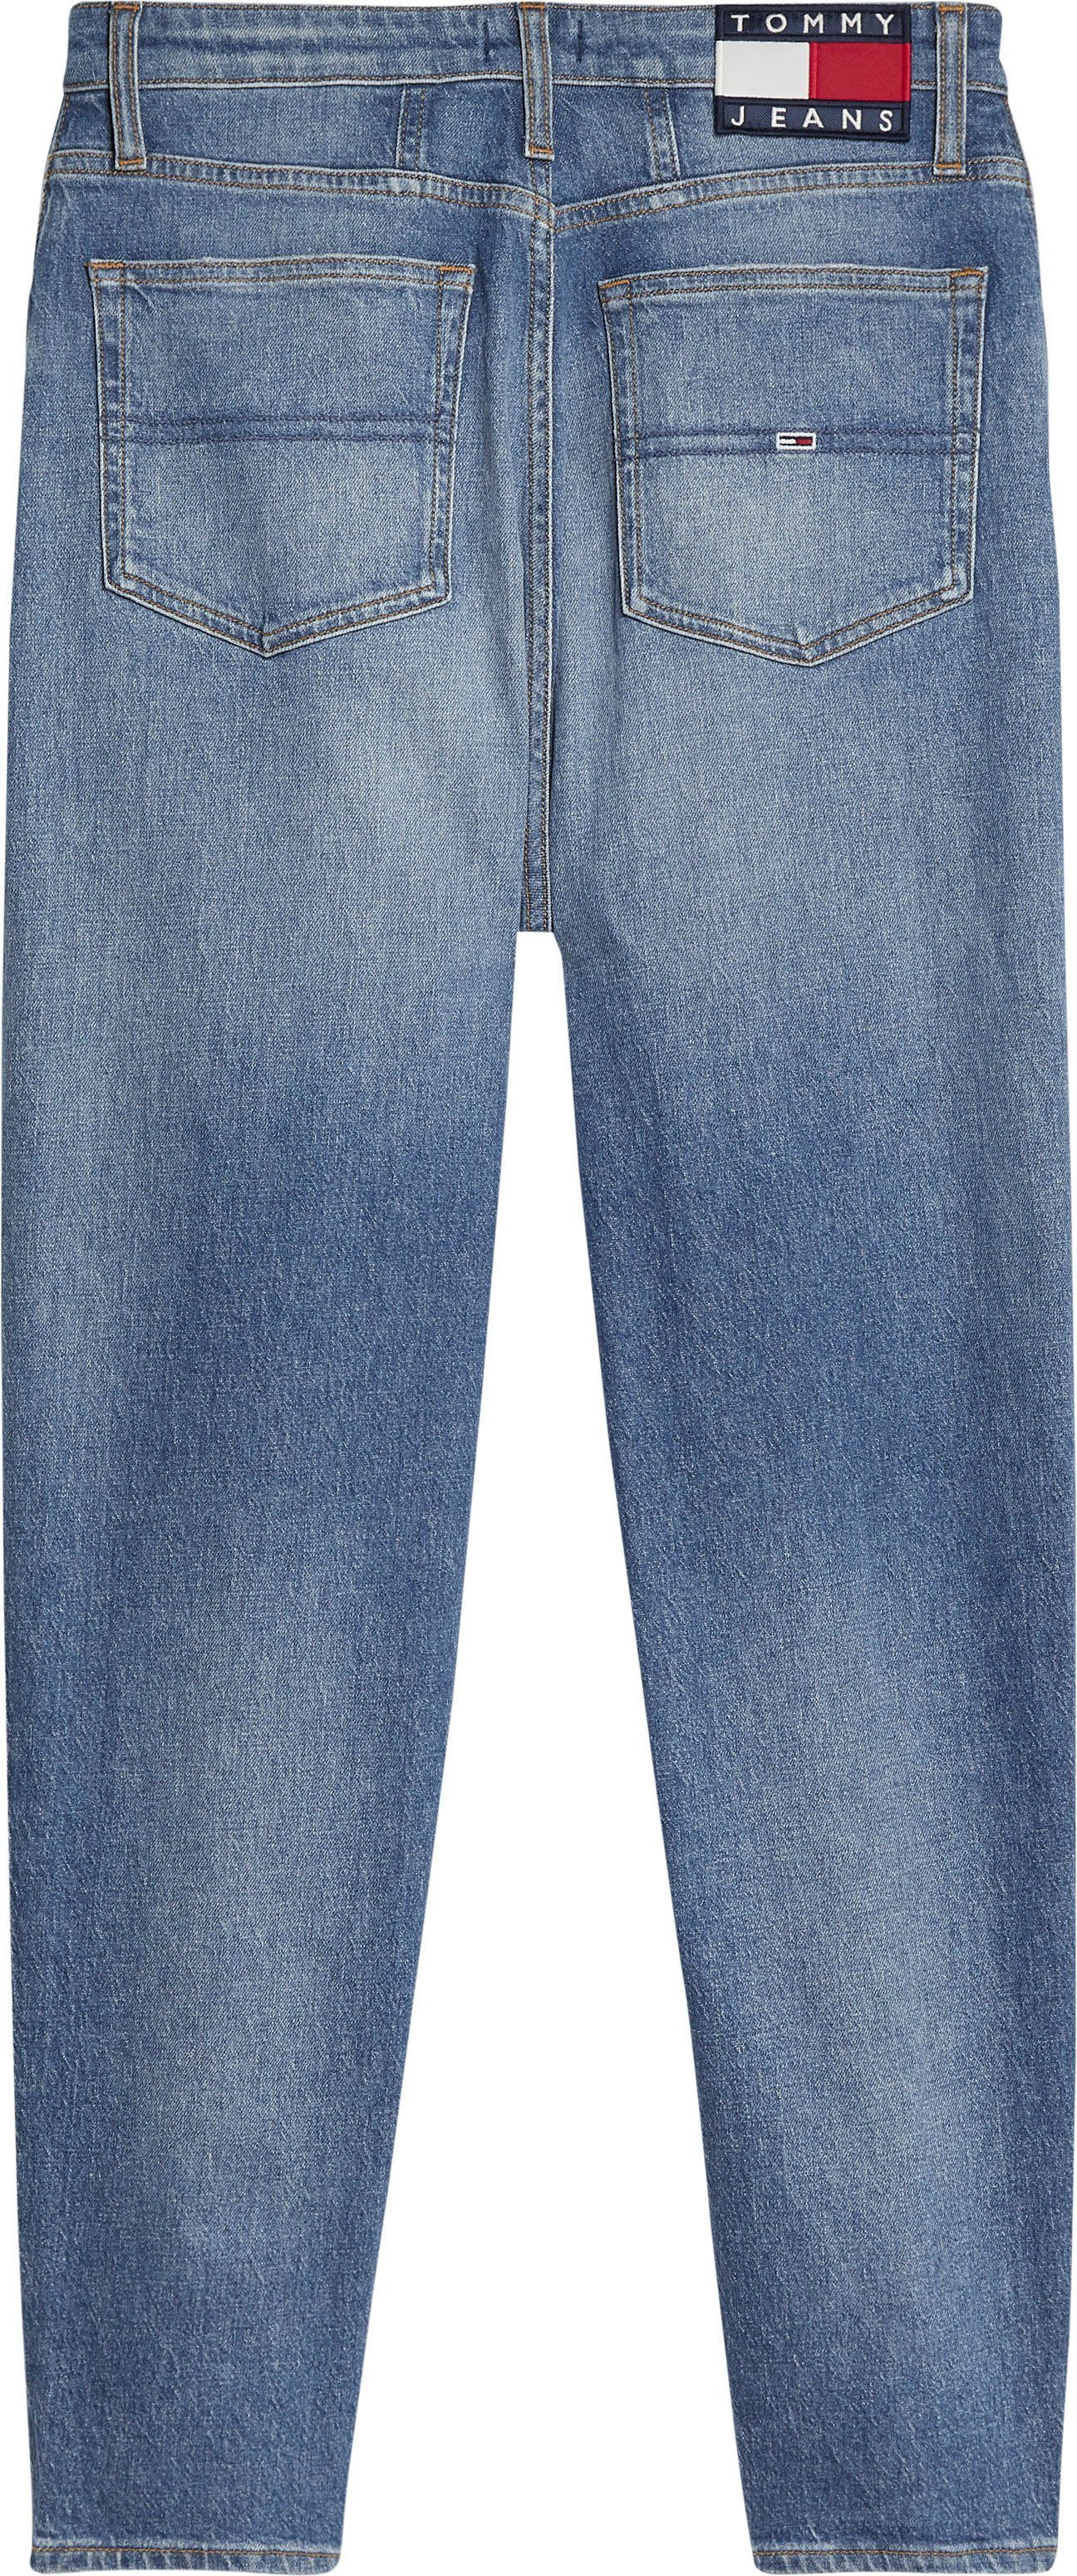 TOMMY JEANS Mom-Jeans MOM JEAN HR TAPERED MRWH